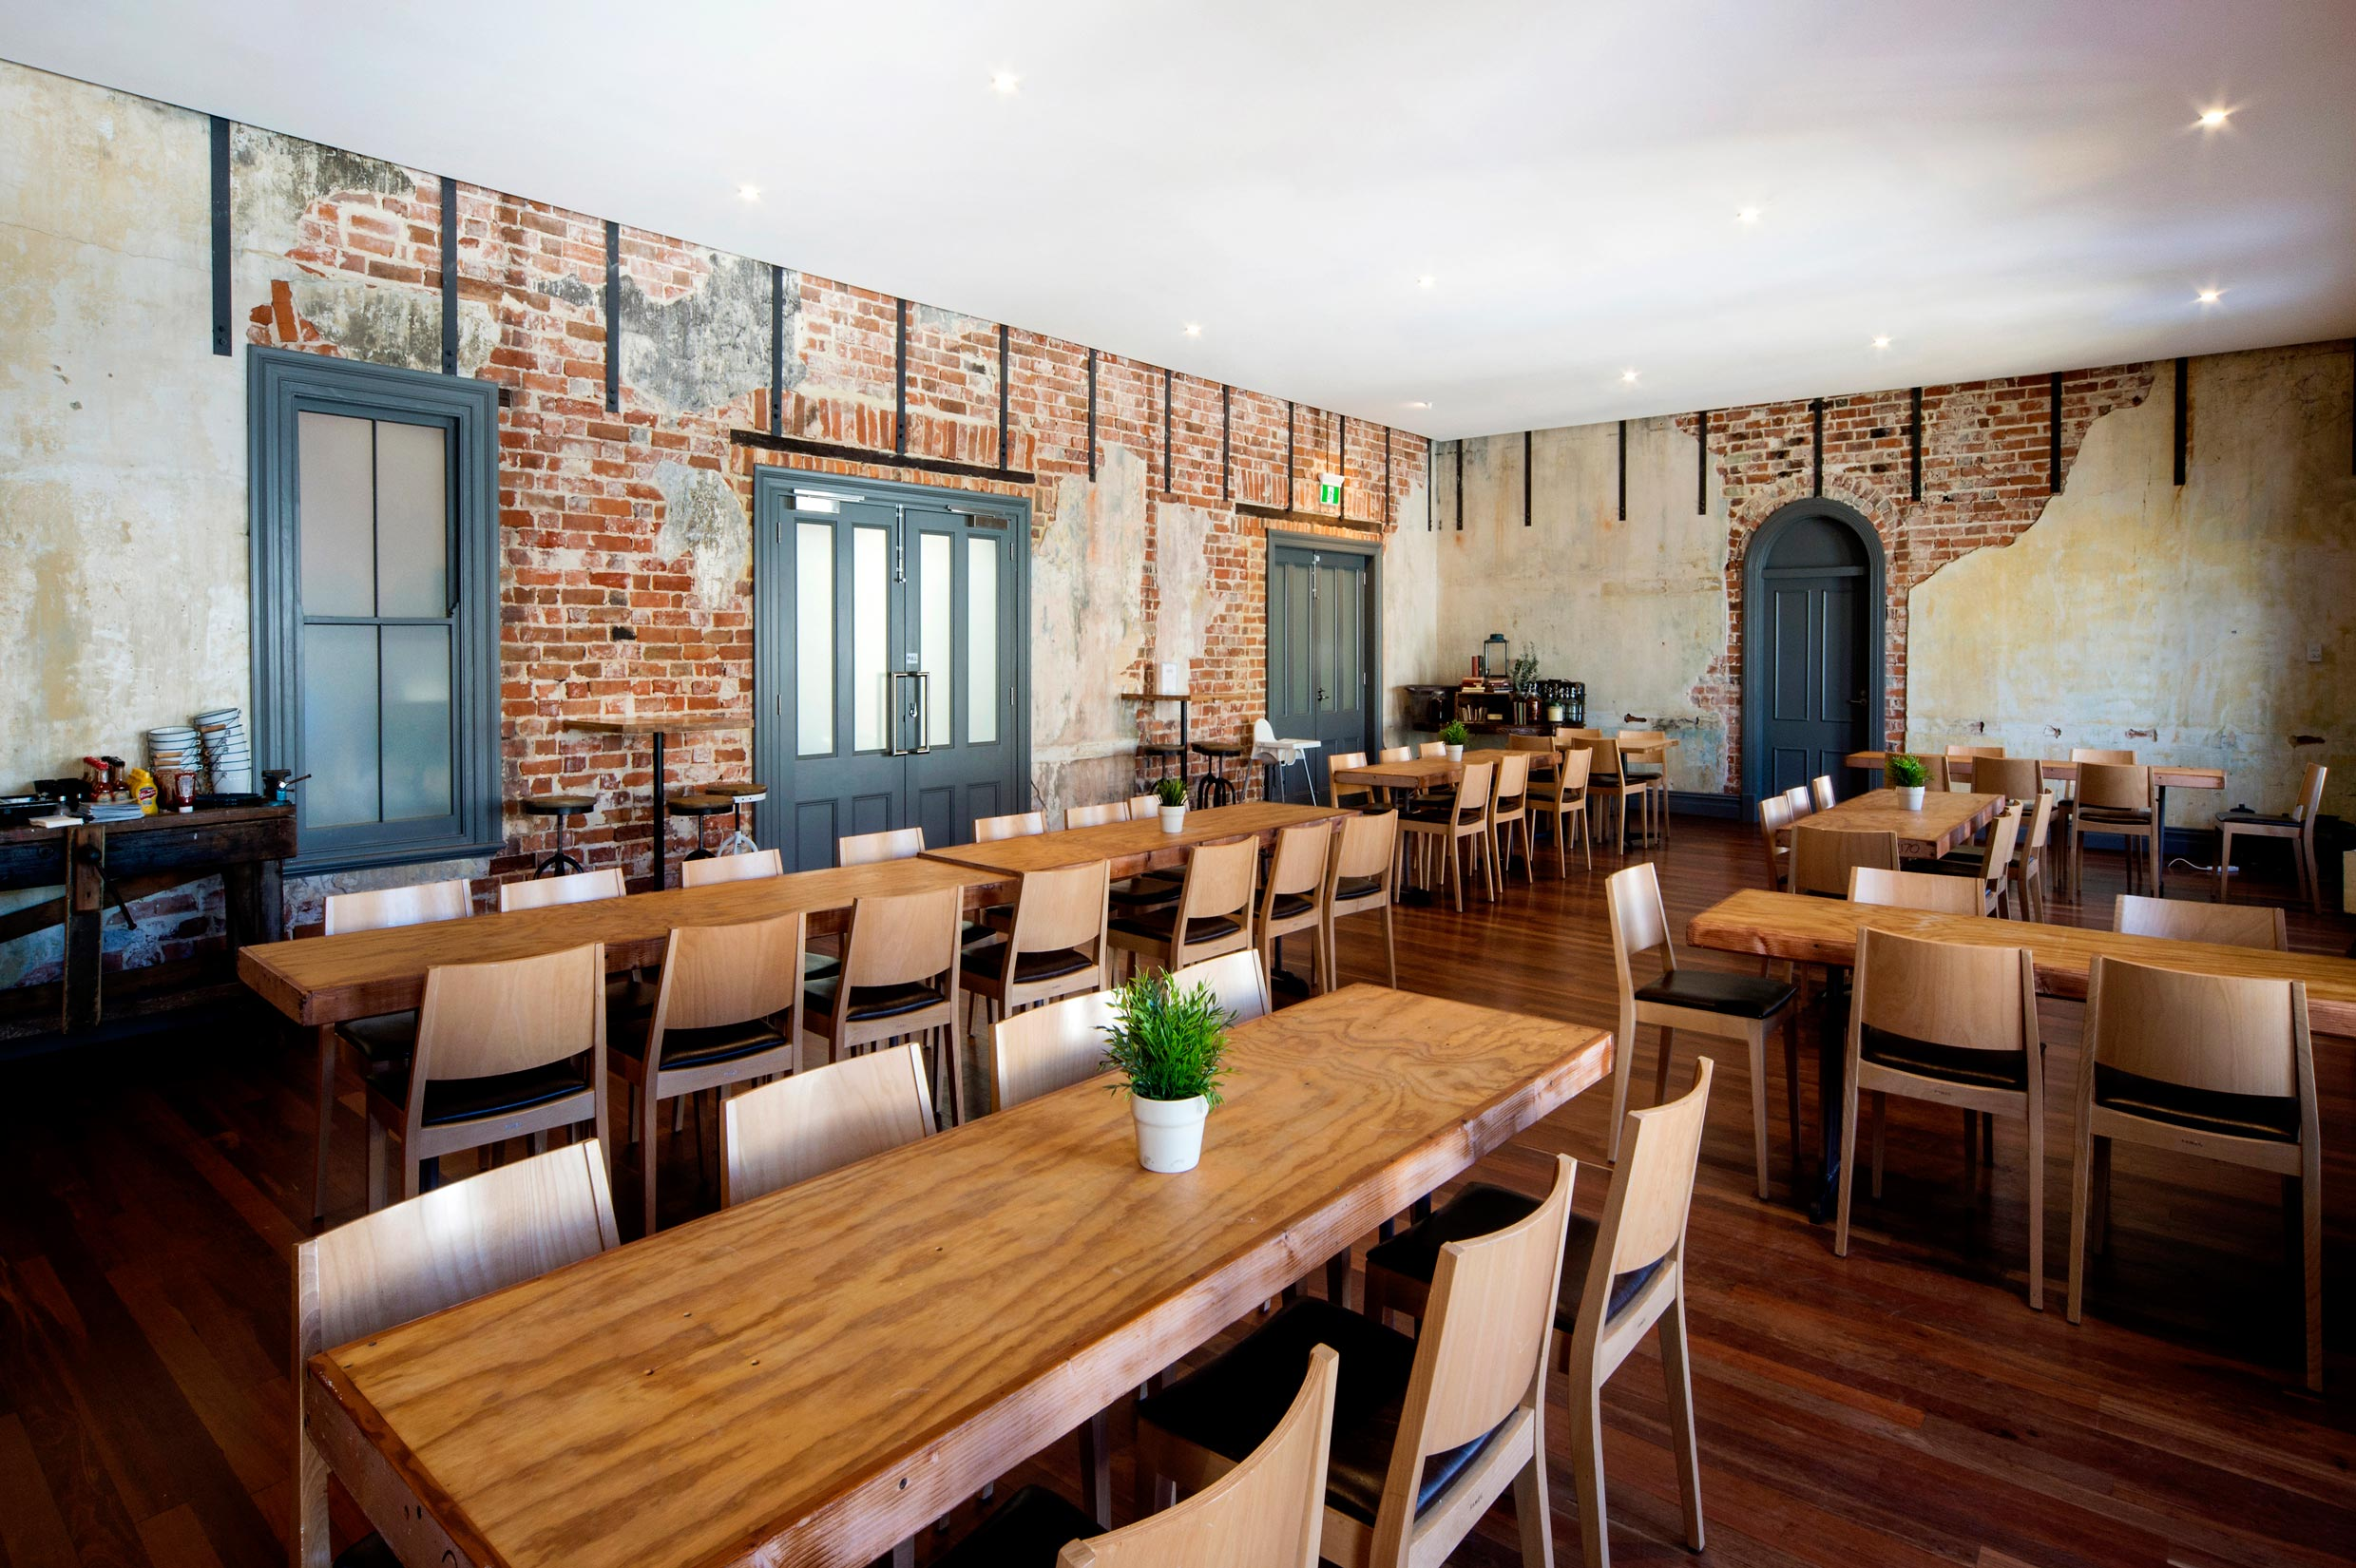 The Guildford Hotel heritage function room with dining tables, and exposed restored brick walls